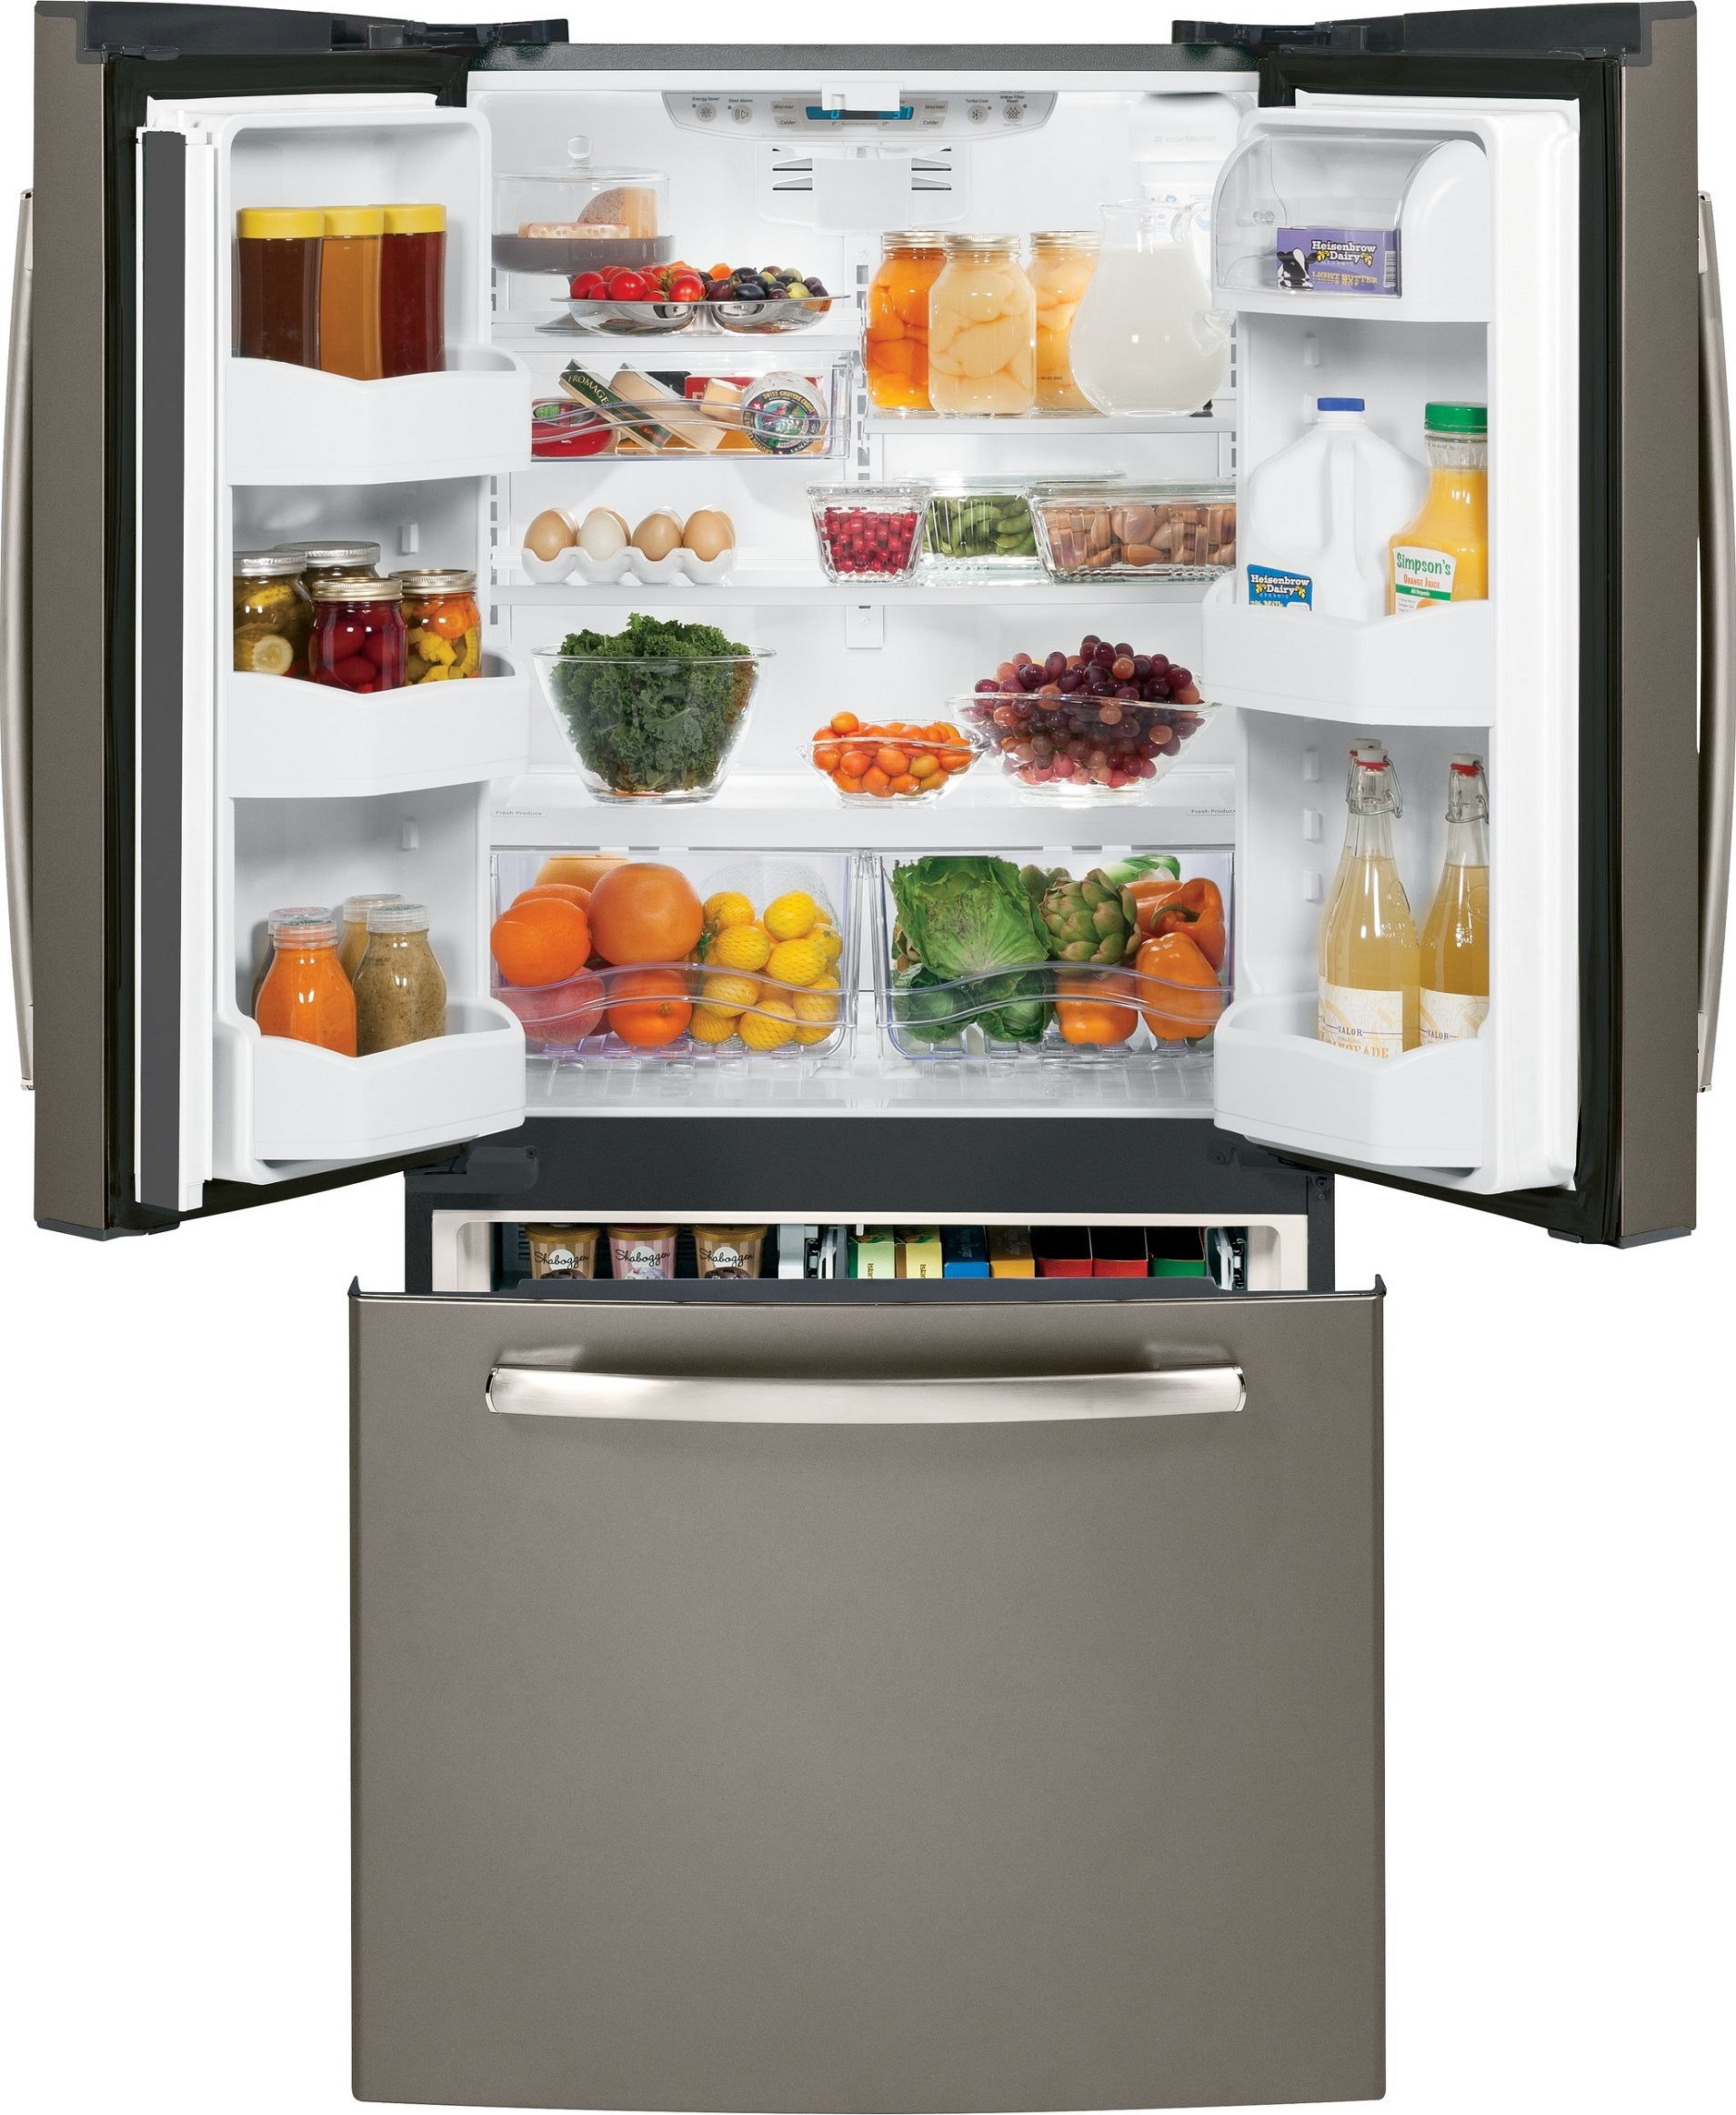 The GE GNS23GMHES 22.7 CU. FT. French-Door Refrigerator in Slate has both refrigerator doors open and the freezer drawer to show the food inside the unit.